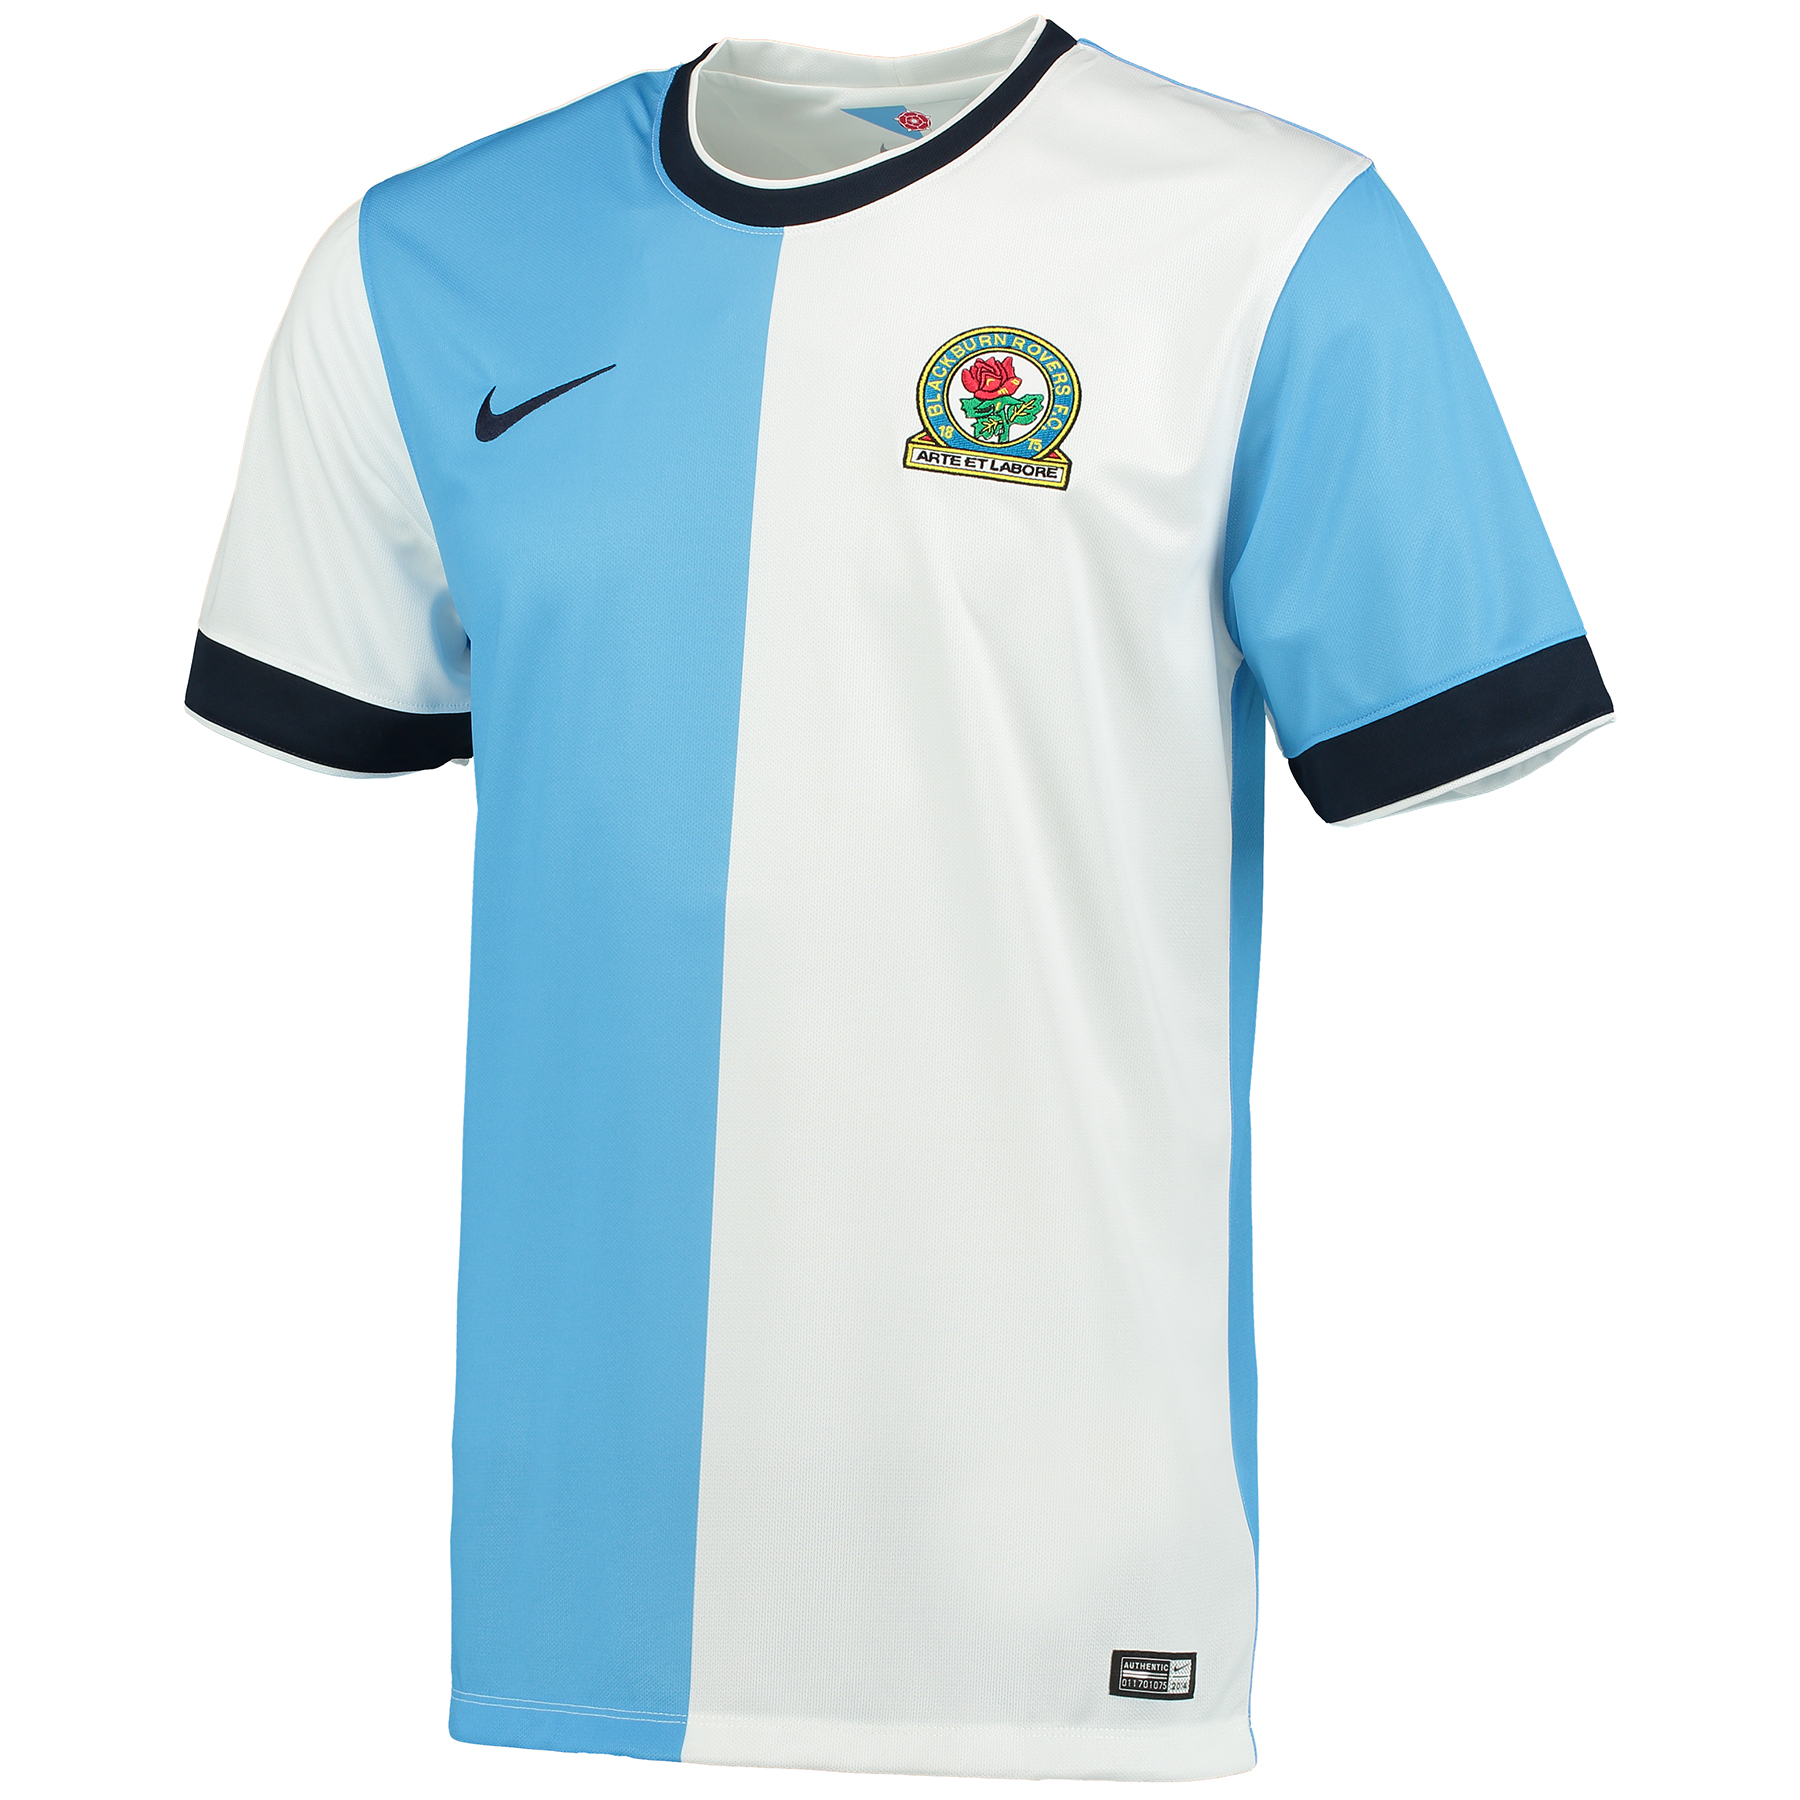 Blackburn Rovers Home Shirt 2014/15 Blue